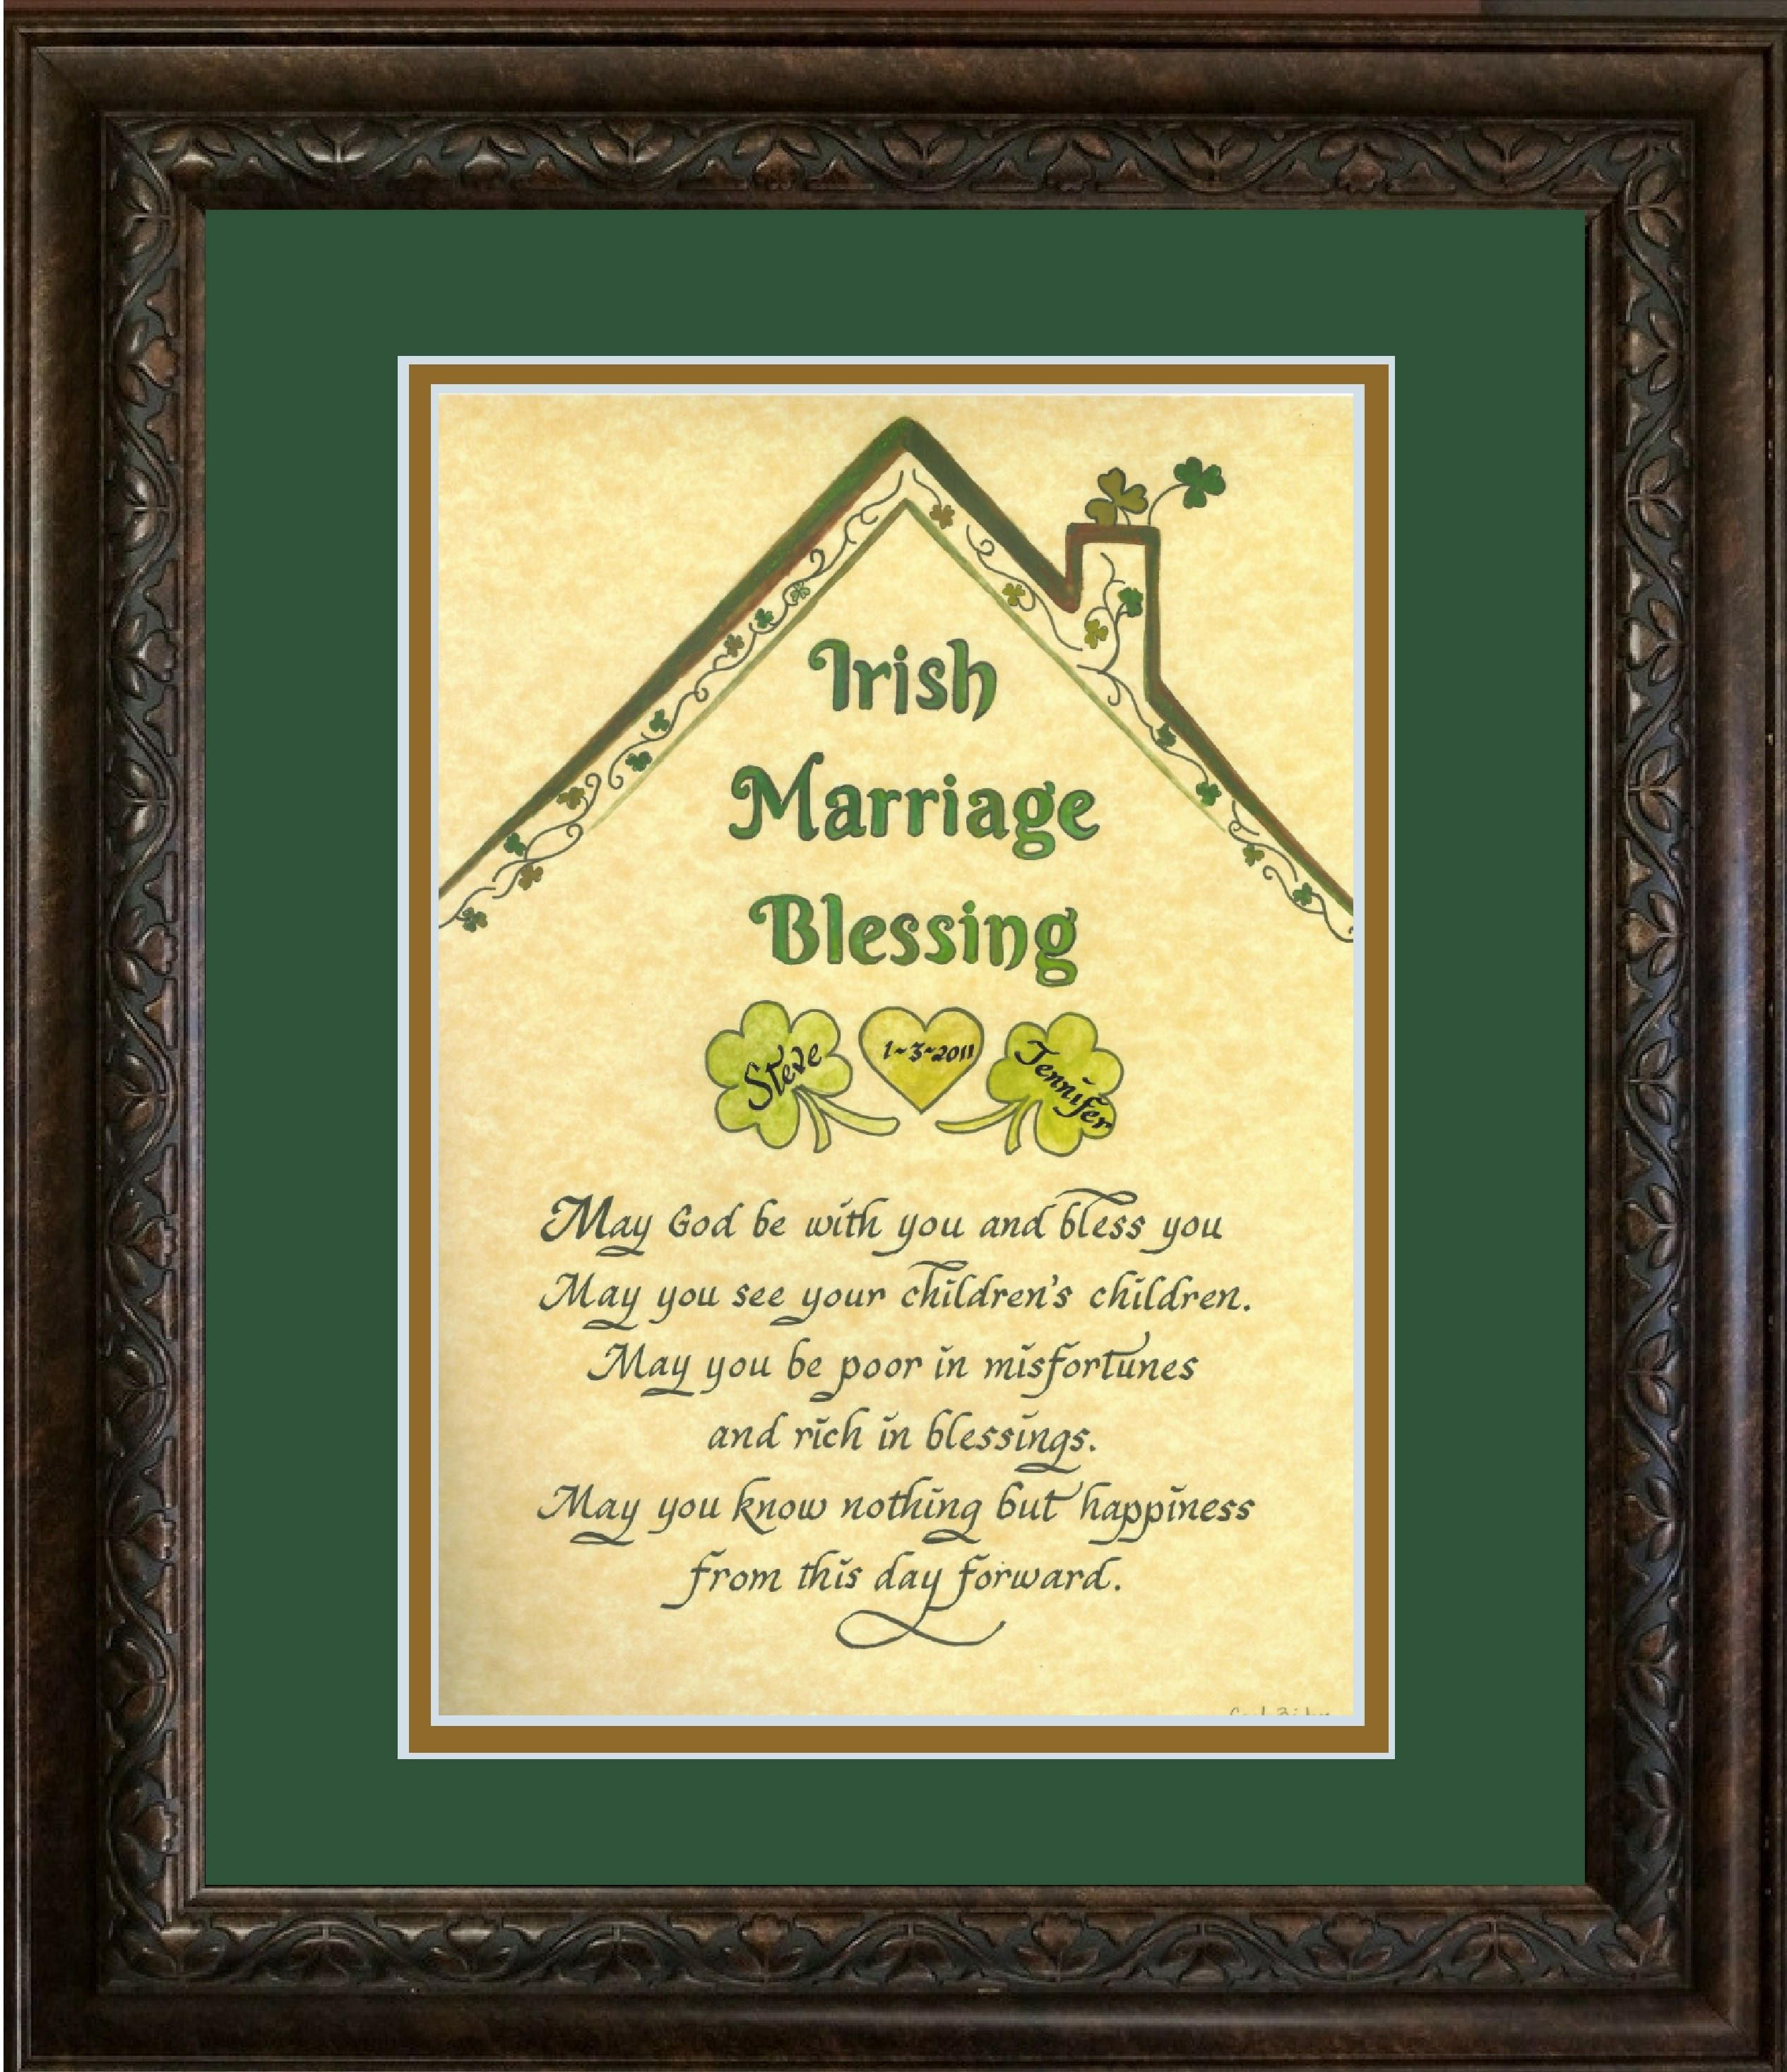 Pin On Irish Gifts For Home Wedding Friends And Family